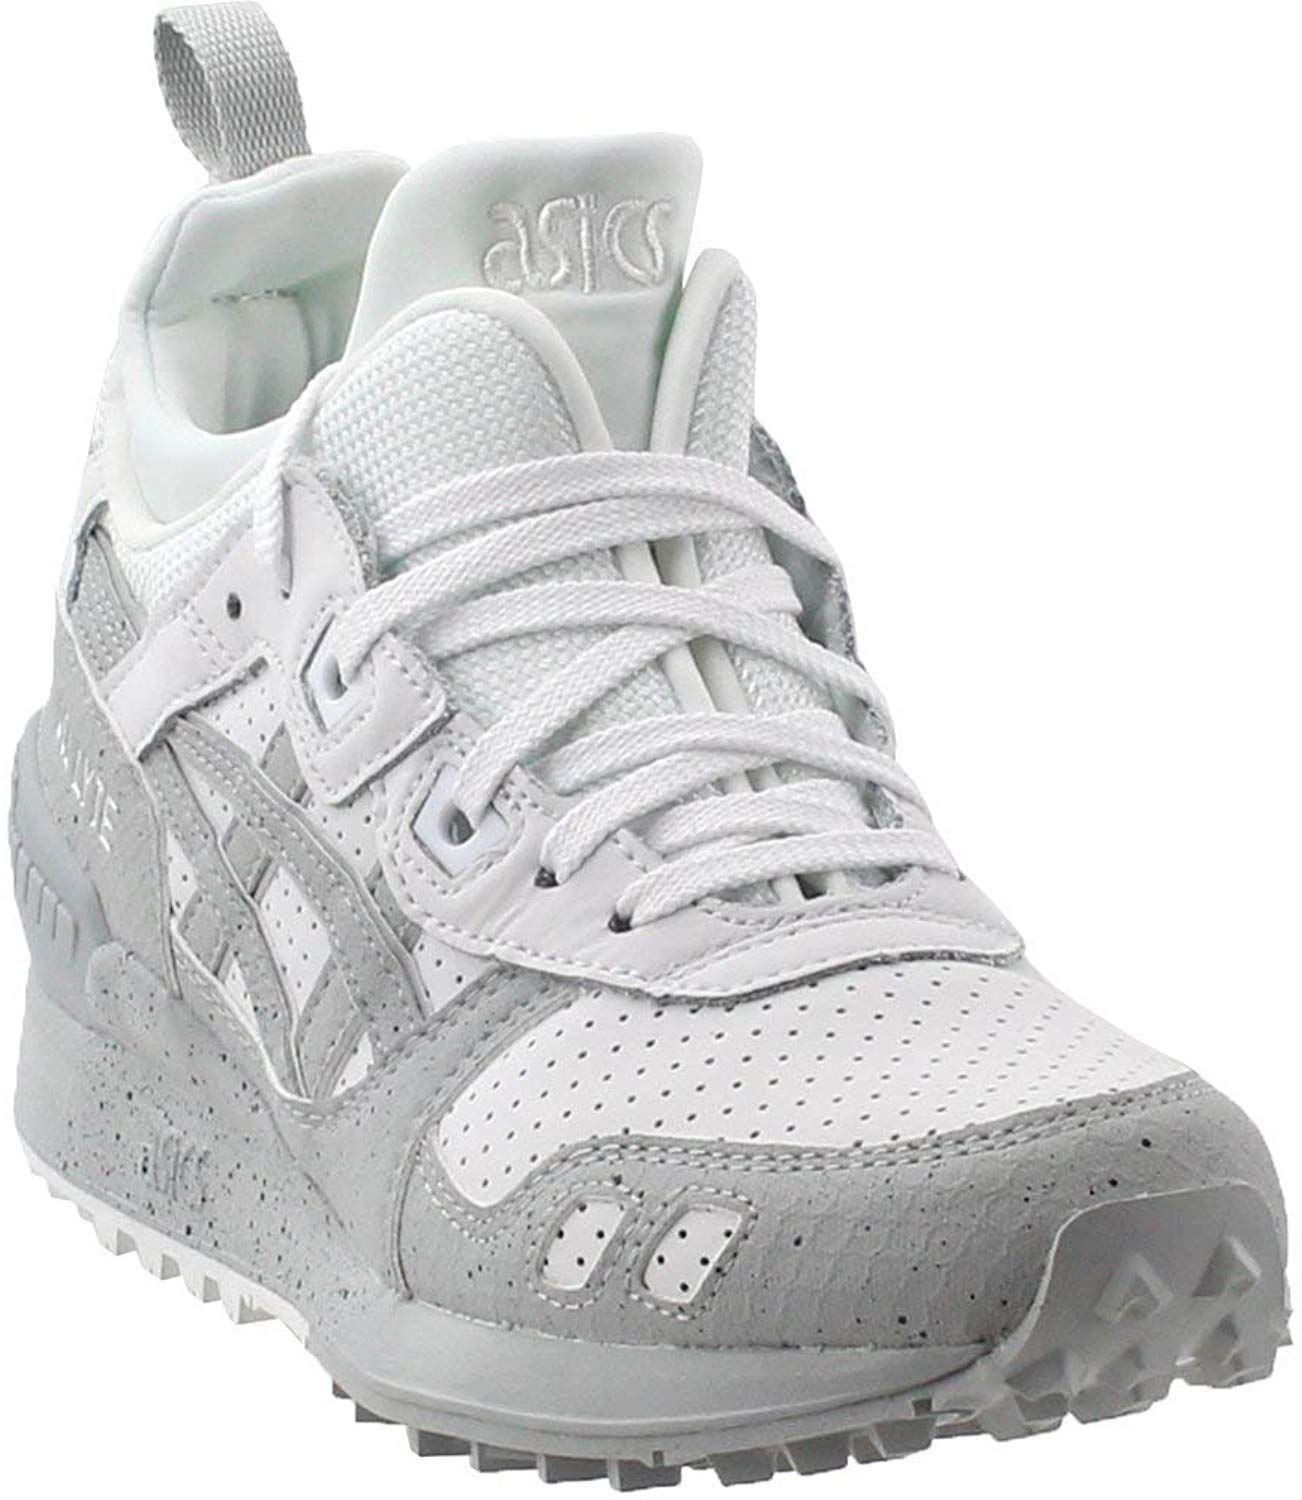 best sneakers 25bd8 43620 Amazon.com | ASICS Tiger Men's Gel-Lyte MT White/Mid Grey 11 ...